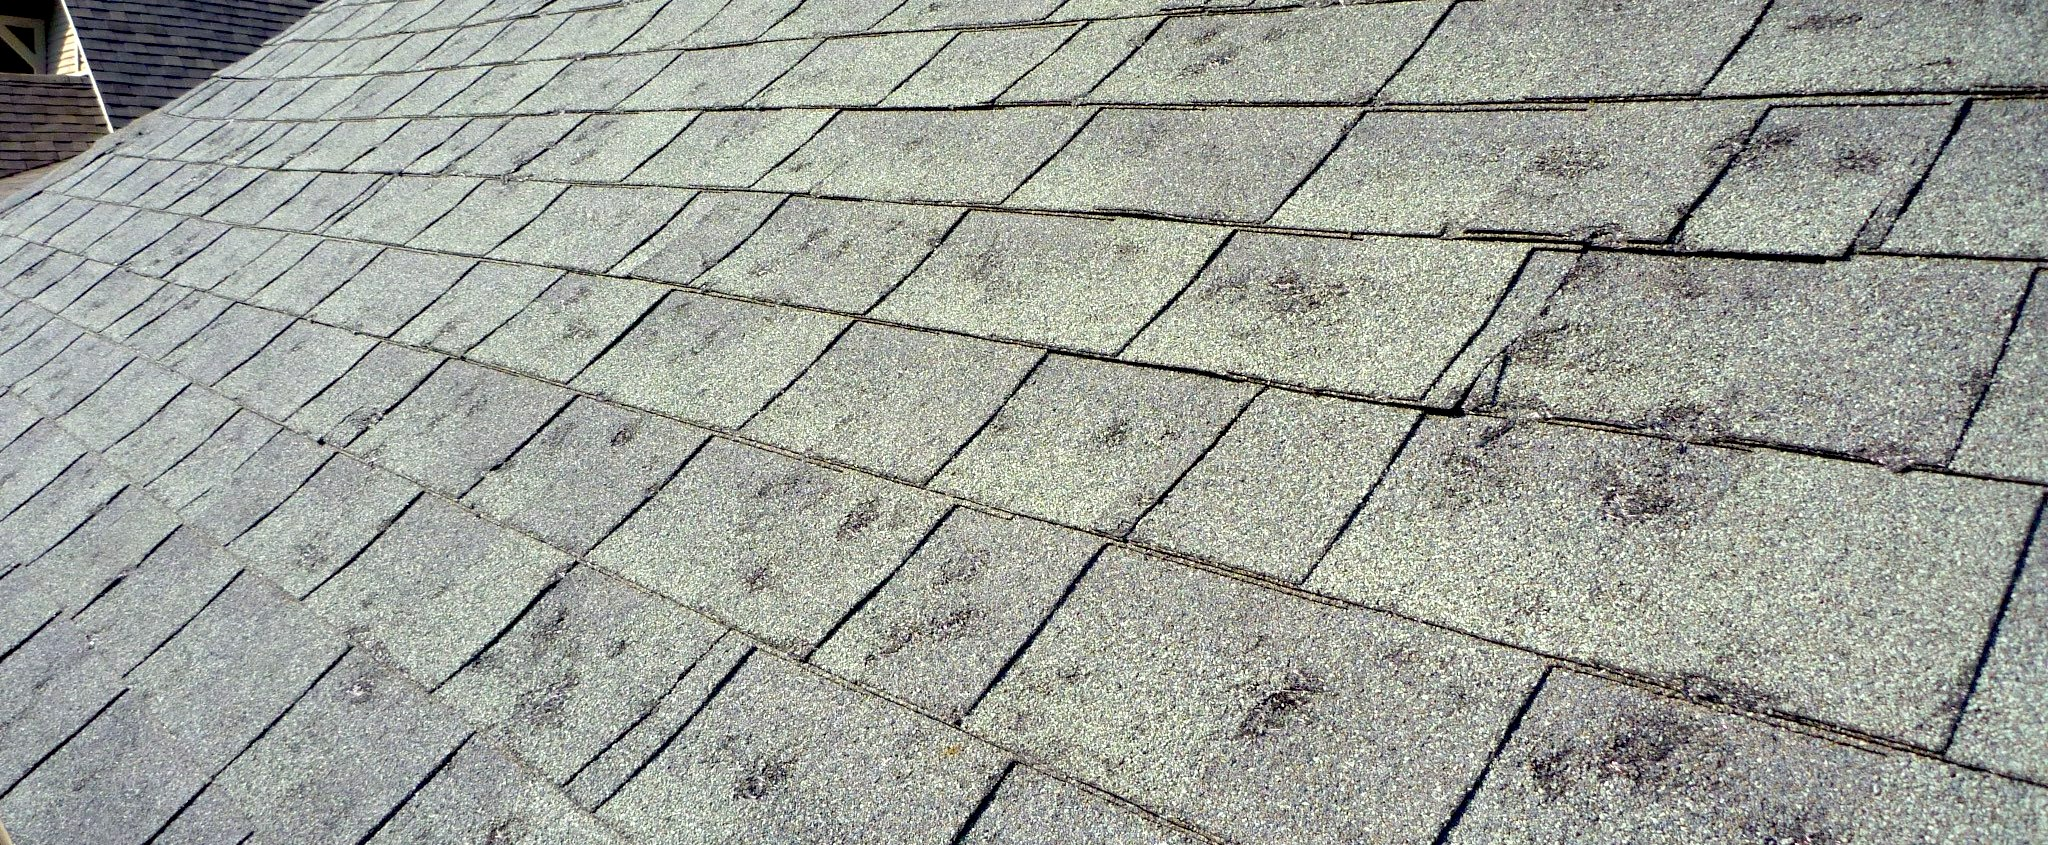 Asphalt Shingles damaged in Holden MO hail storm